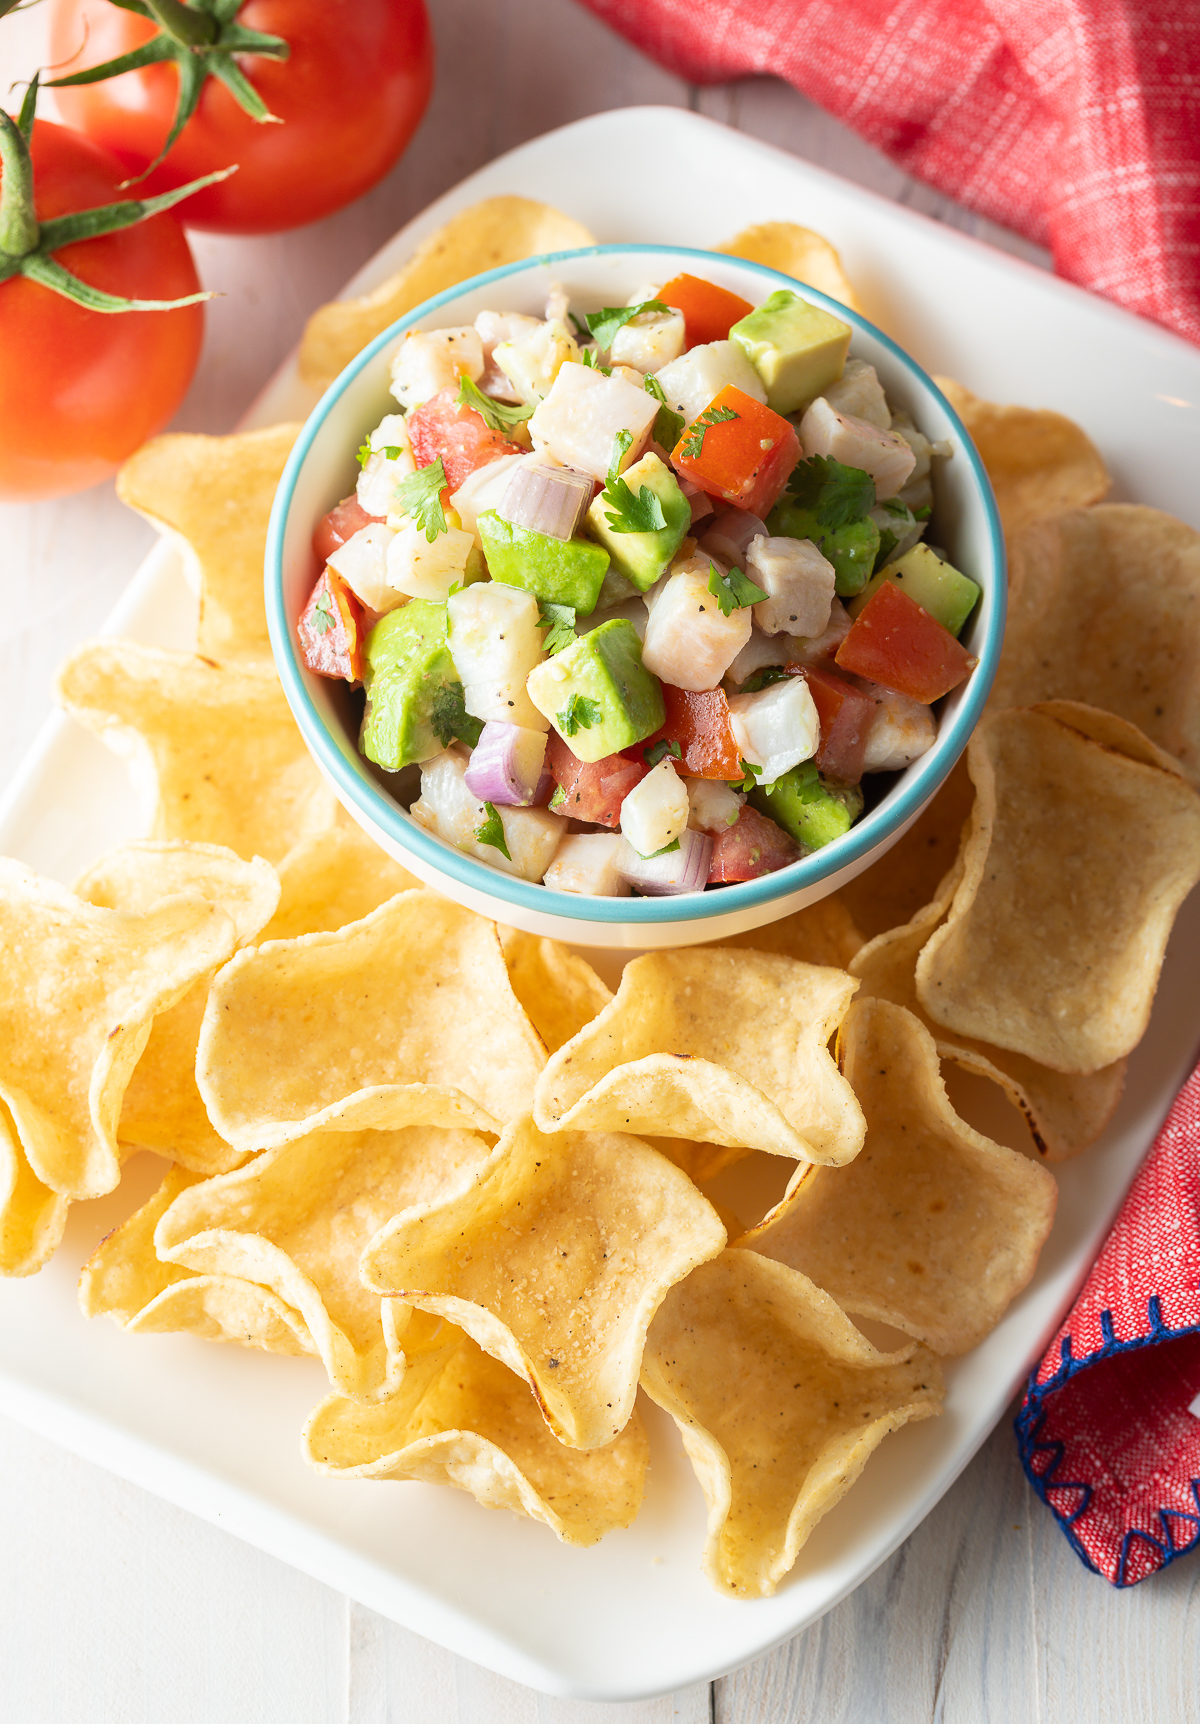 Ceviche Recipe #ASpicyPerspective #Ceviche #CevicheRecipe #HowtoMakeCeviche #CevicheIngredients #Healthy #LowCarb #Paleo